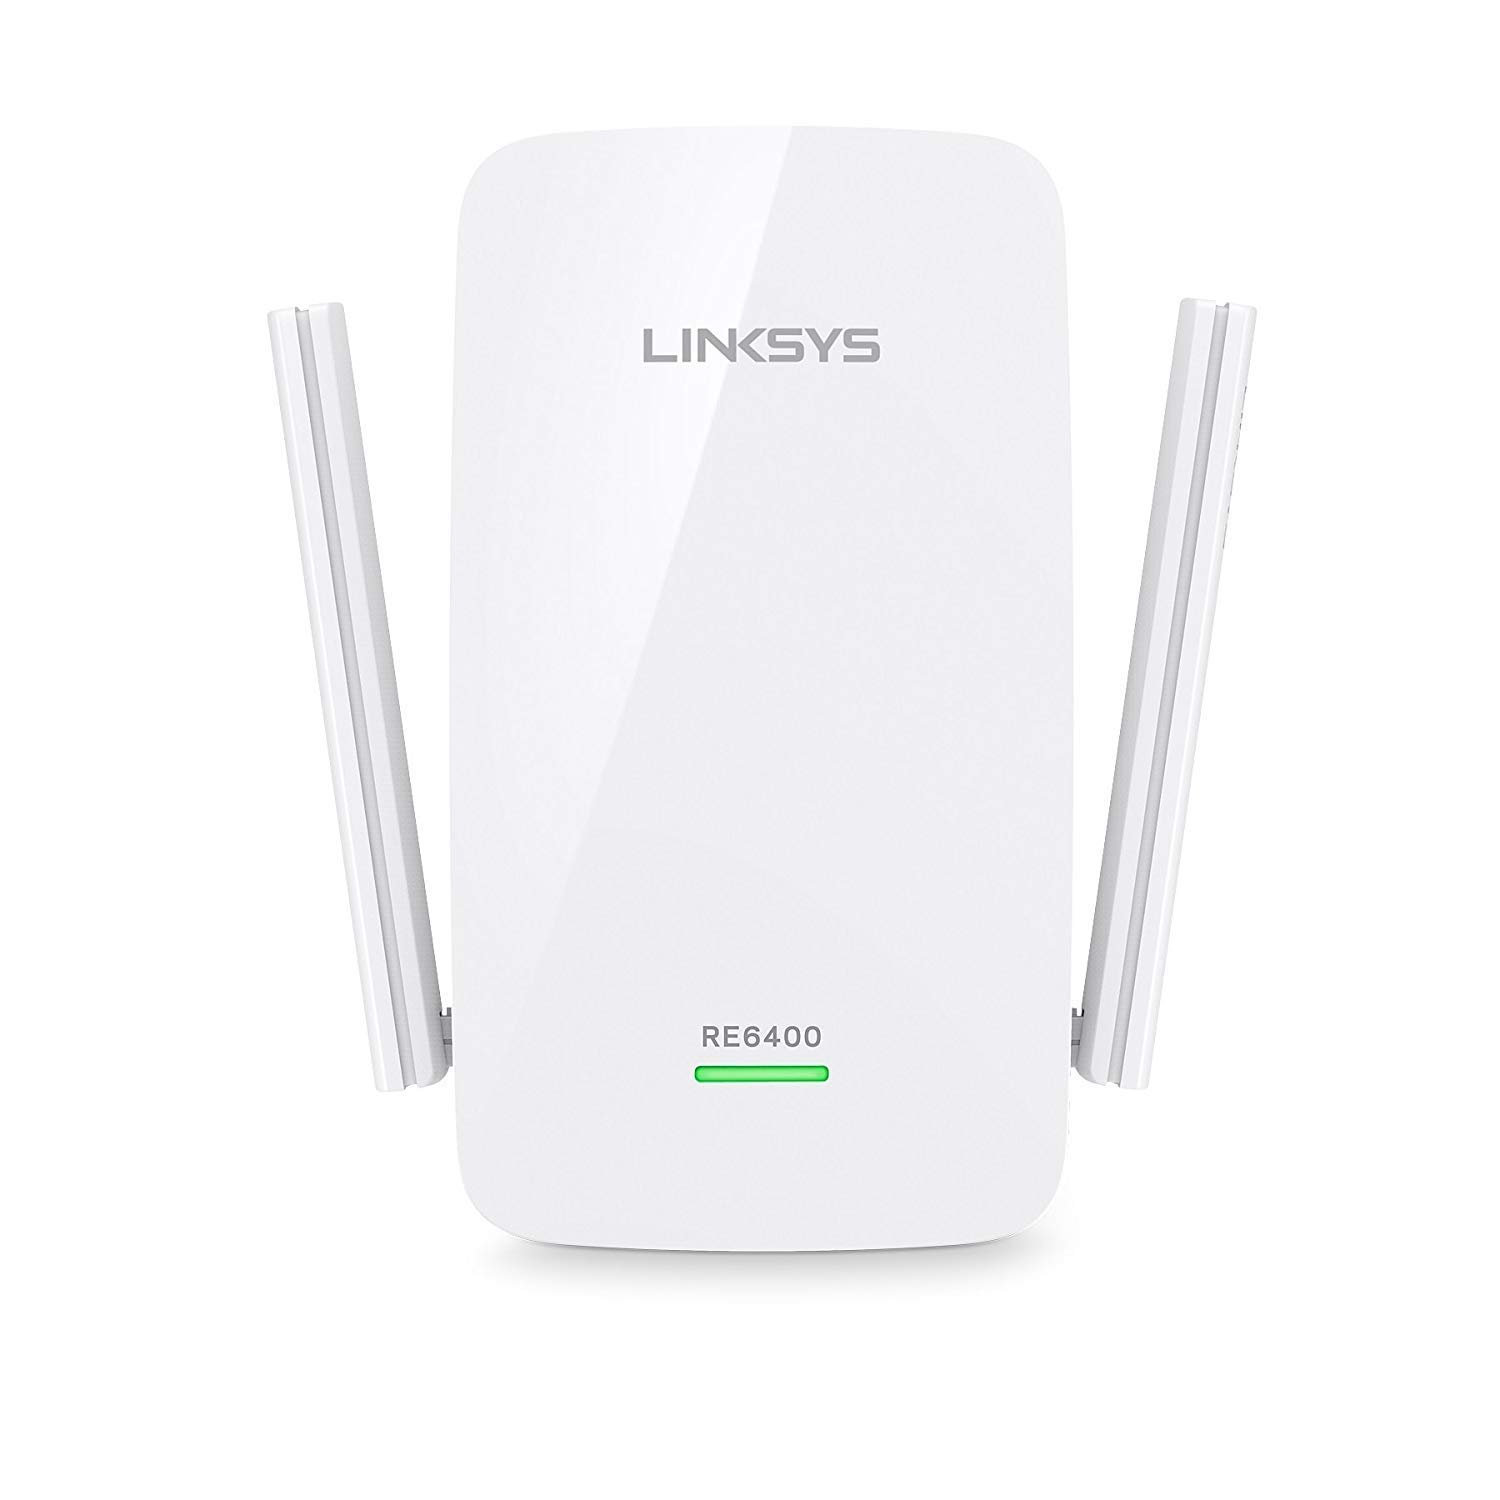 Linksys AC1200 Boost EX Dual-Band Wi-Fi Range Extender (RE6400) (Renewed) by Linksys